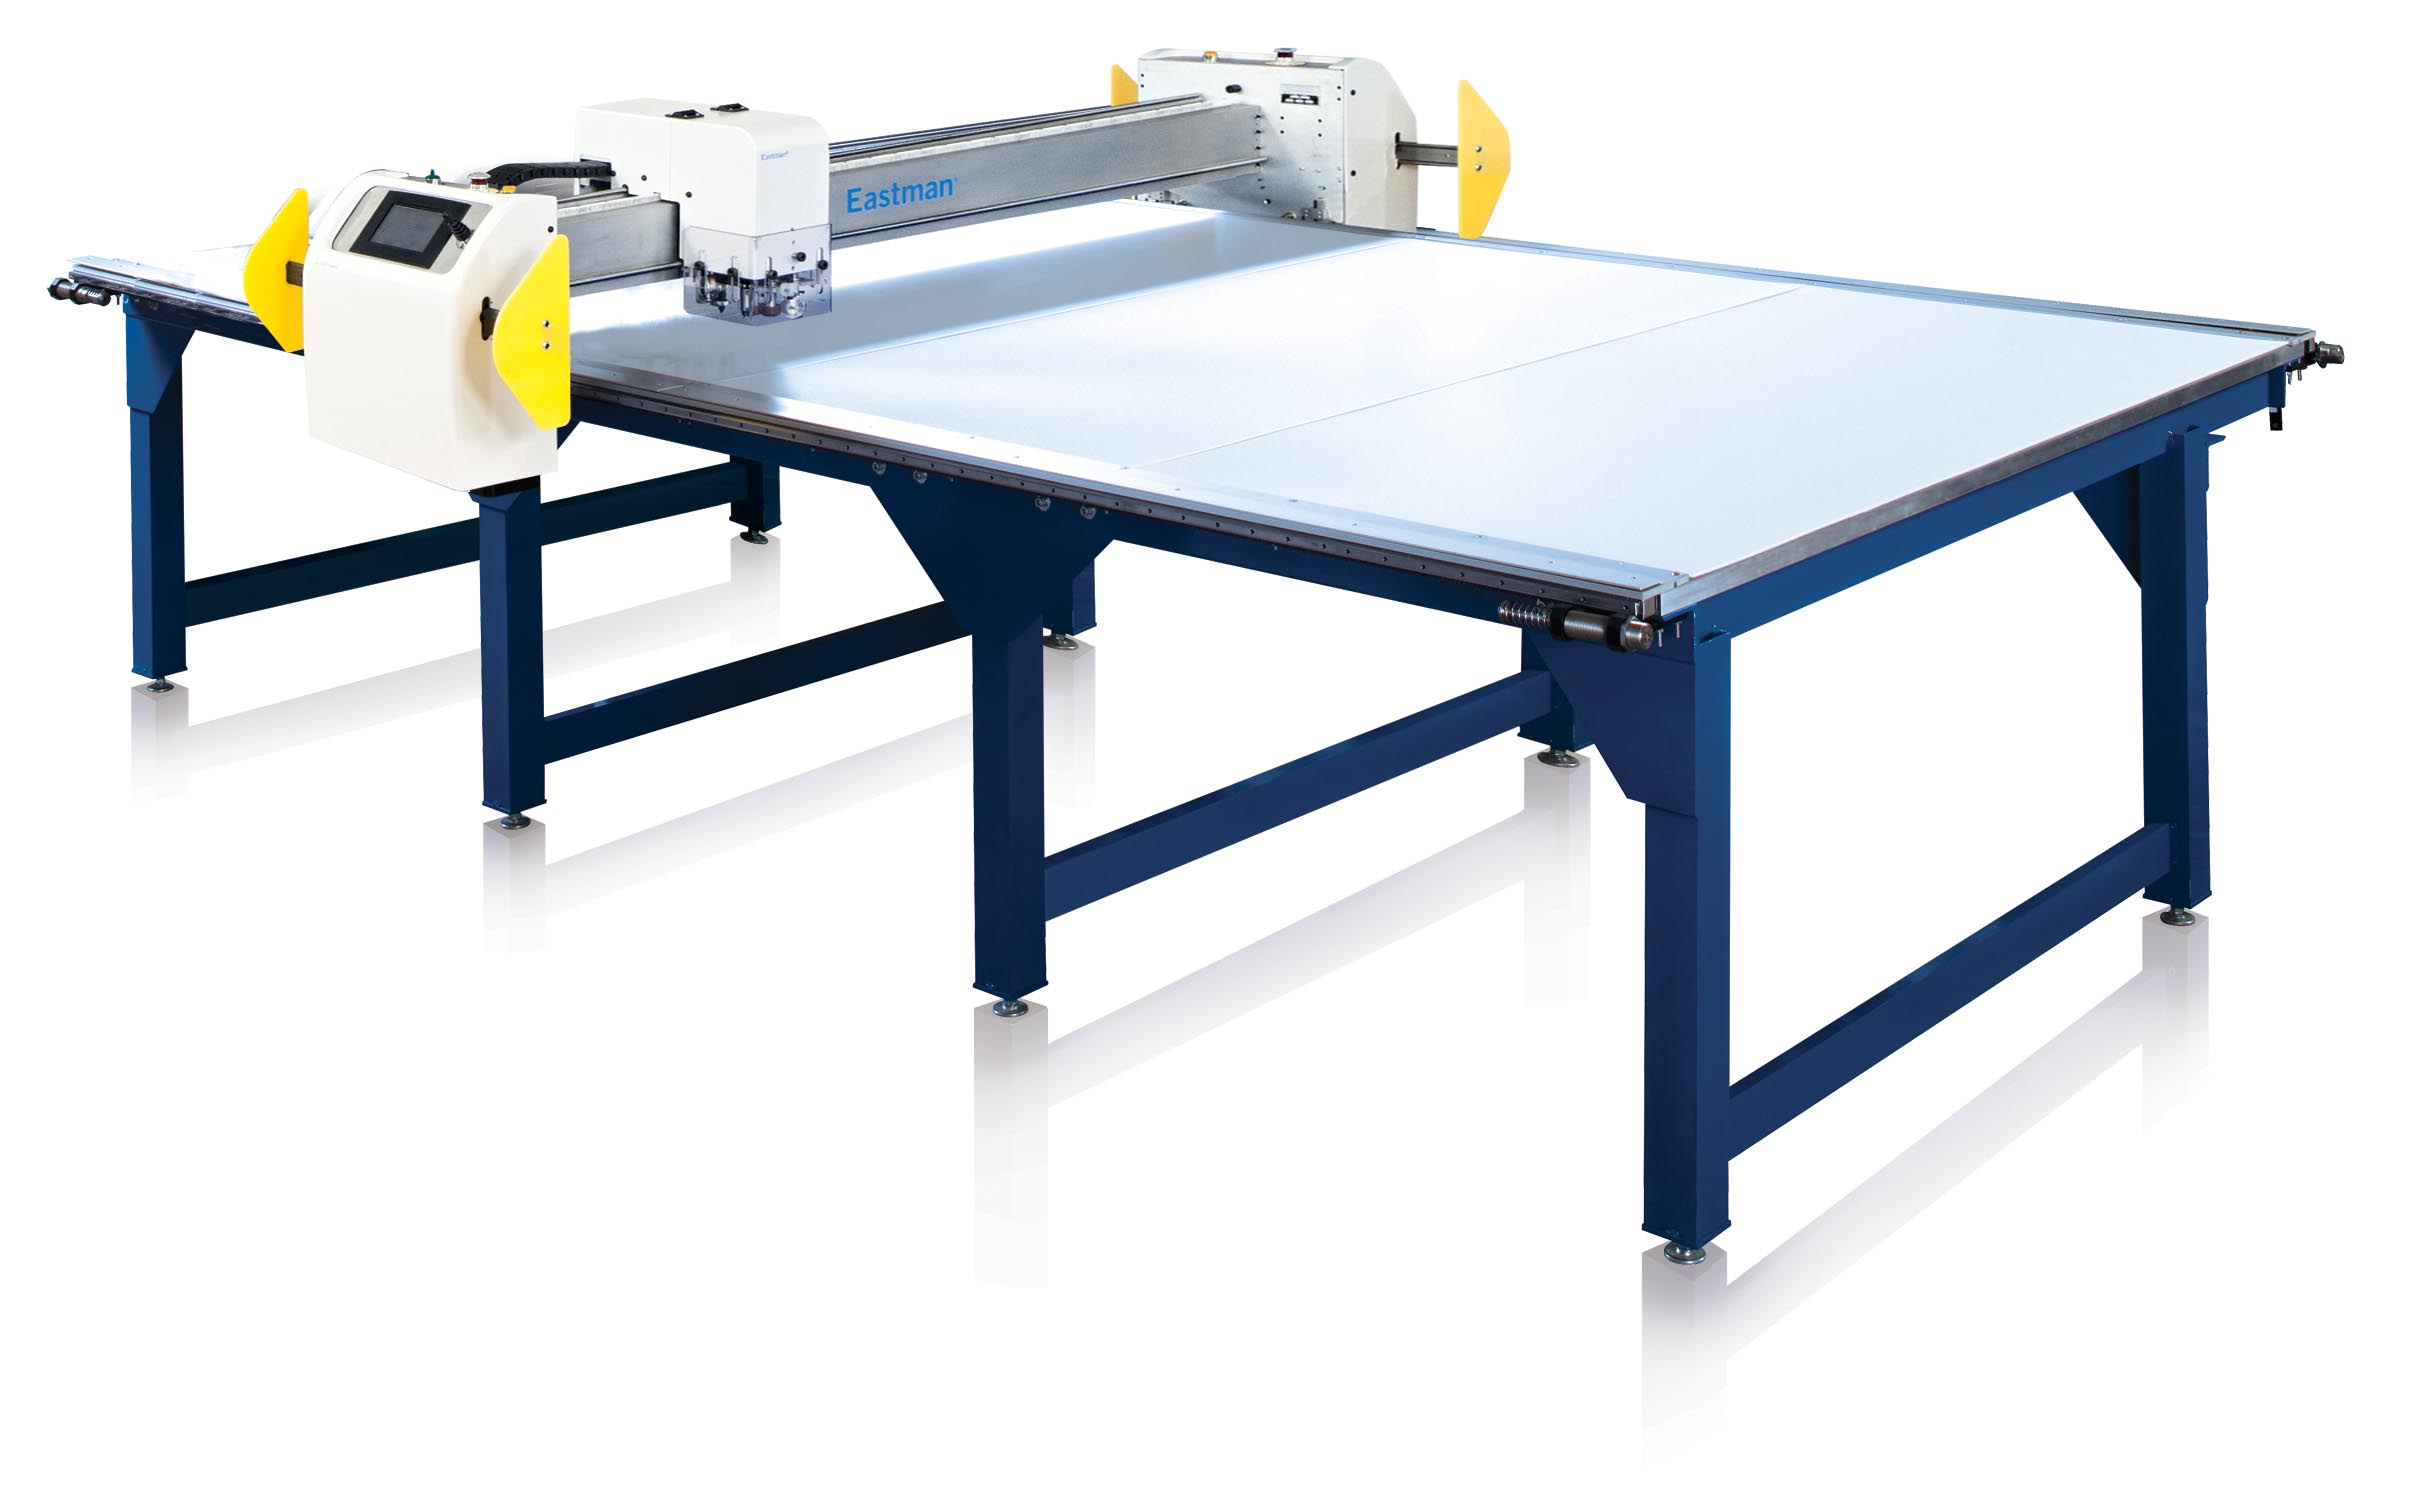 Eagle s125 static table cutting system multistation en for Plotter de mesa